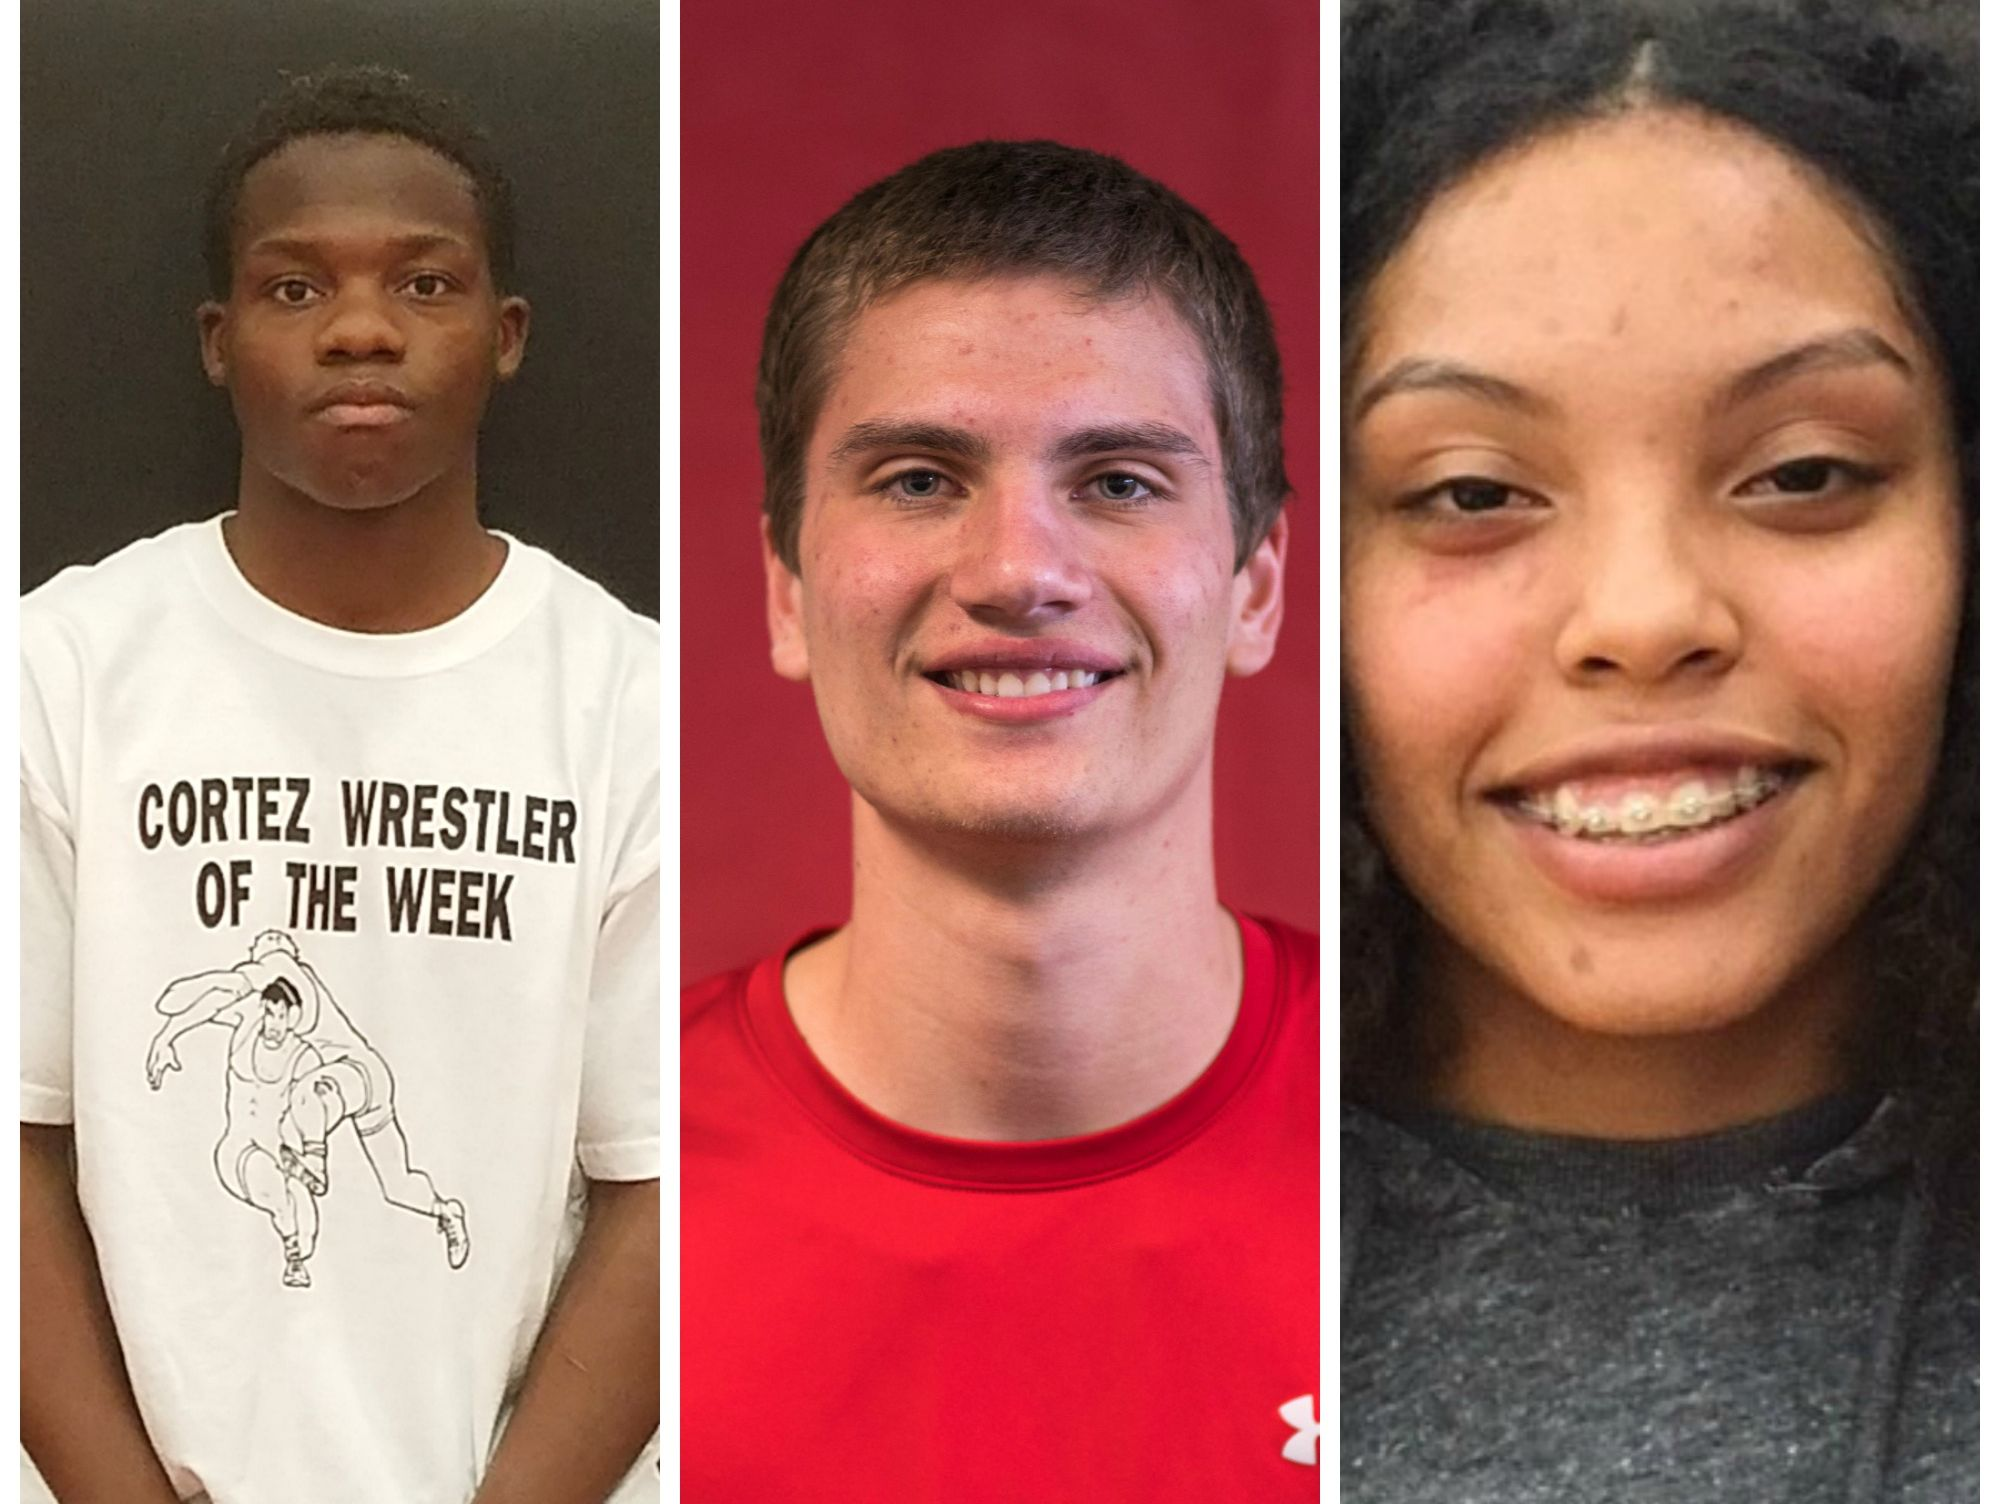 Congratulations to the azcentral.com Sports Awards Academic All-Star of the Week, Jerry Sohn, and the Athletes of the Week, Bryce Andrashie and Tyra Williams, presented by La-Z-Boy Furniture Galleries, for Feb. 2-9.